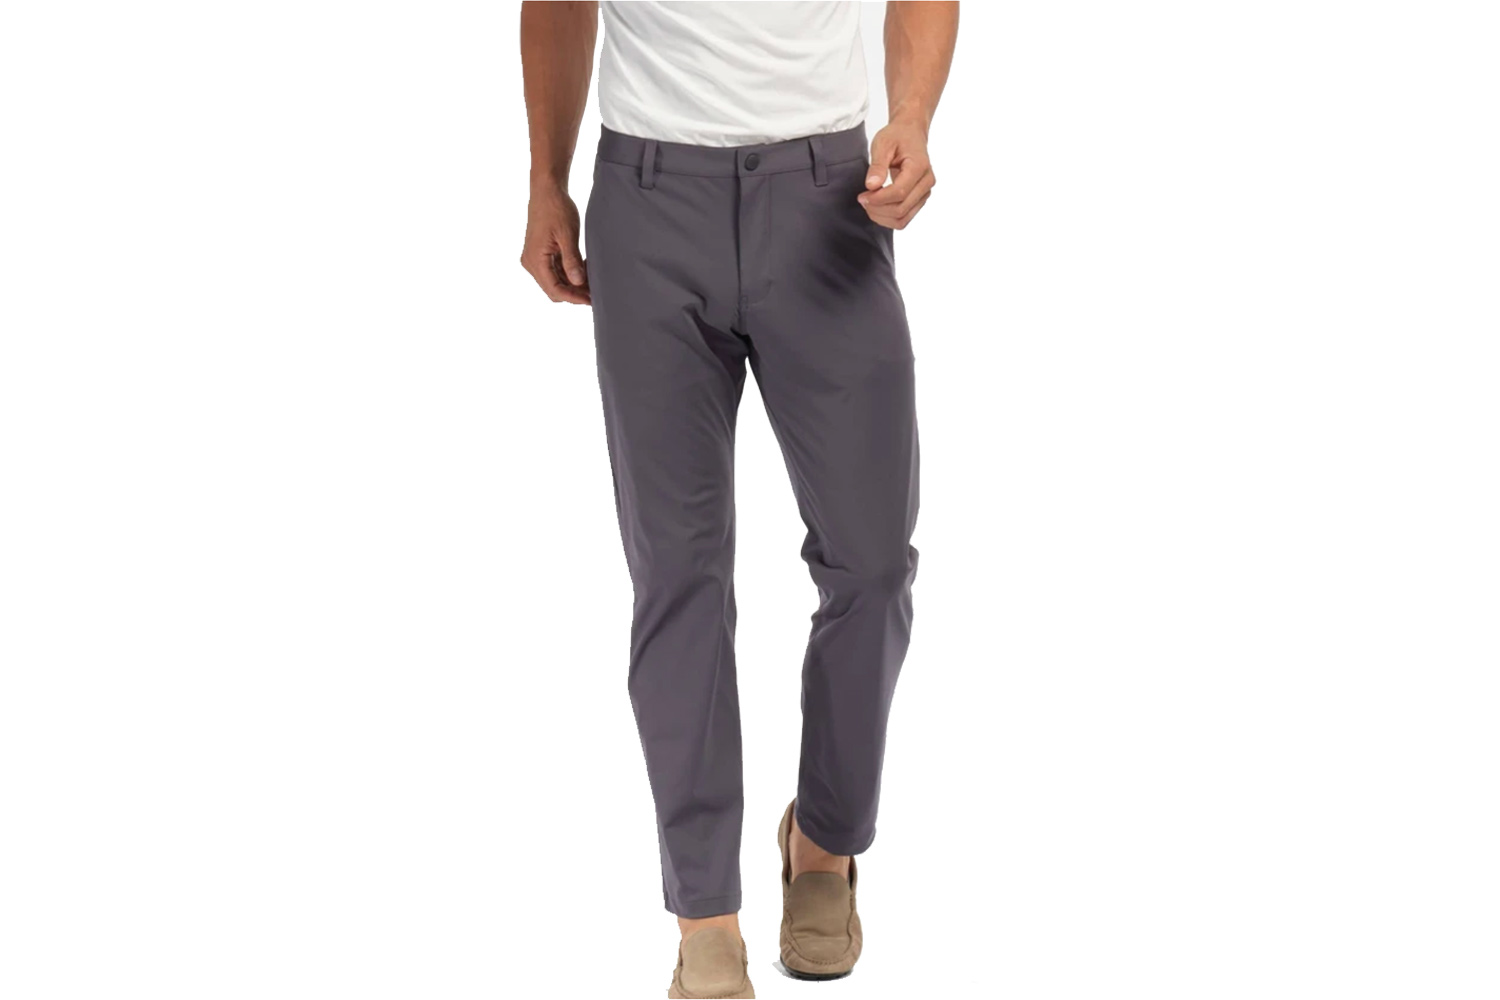 Rhone Commuter Travel Pants